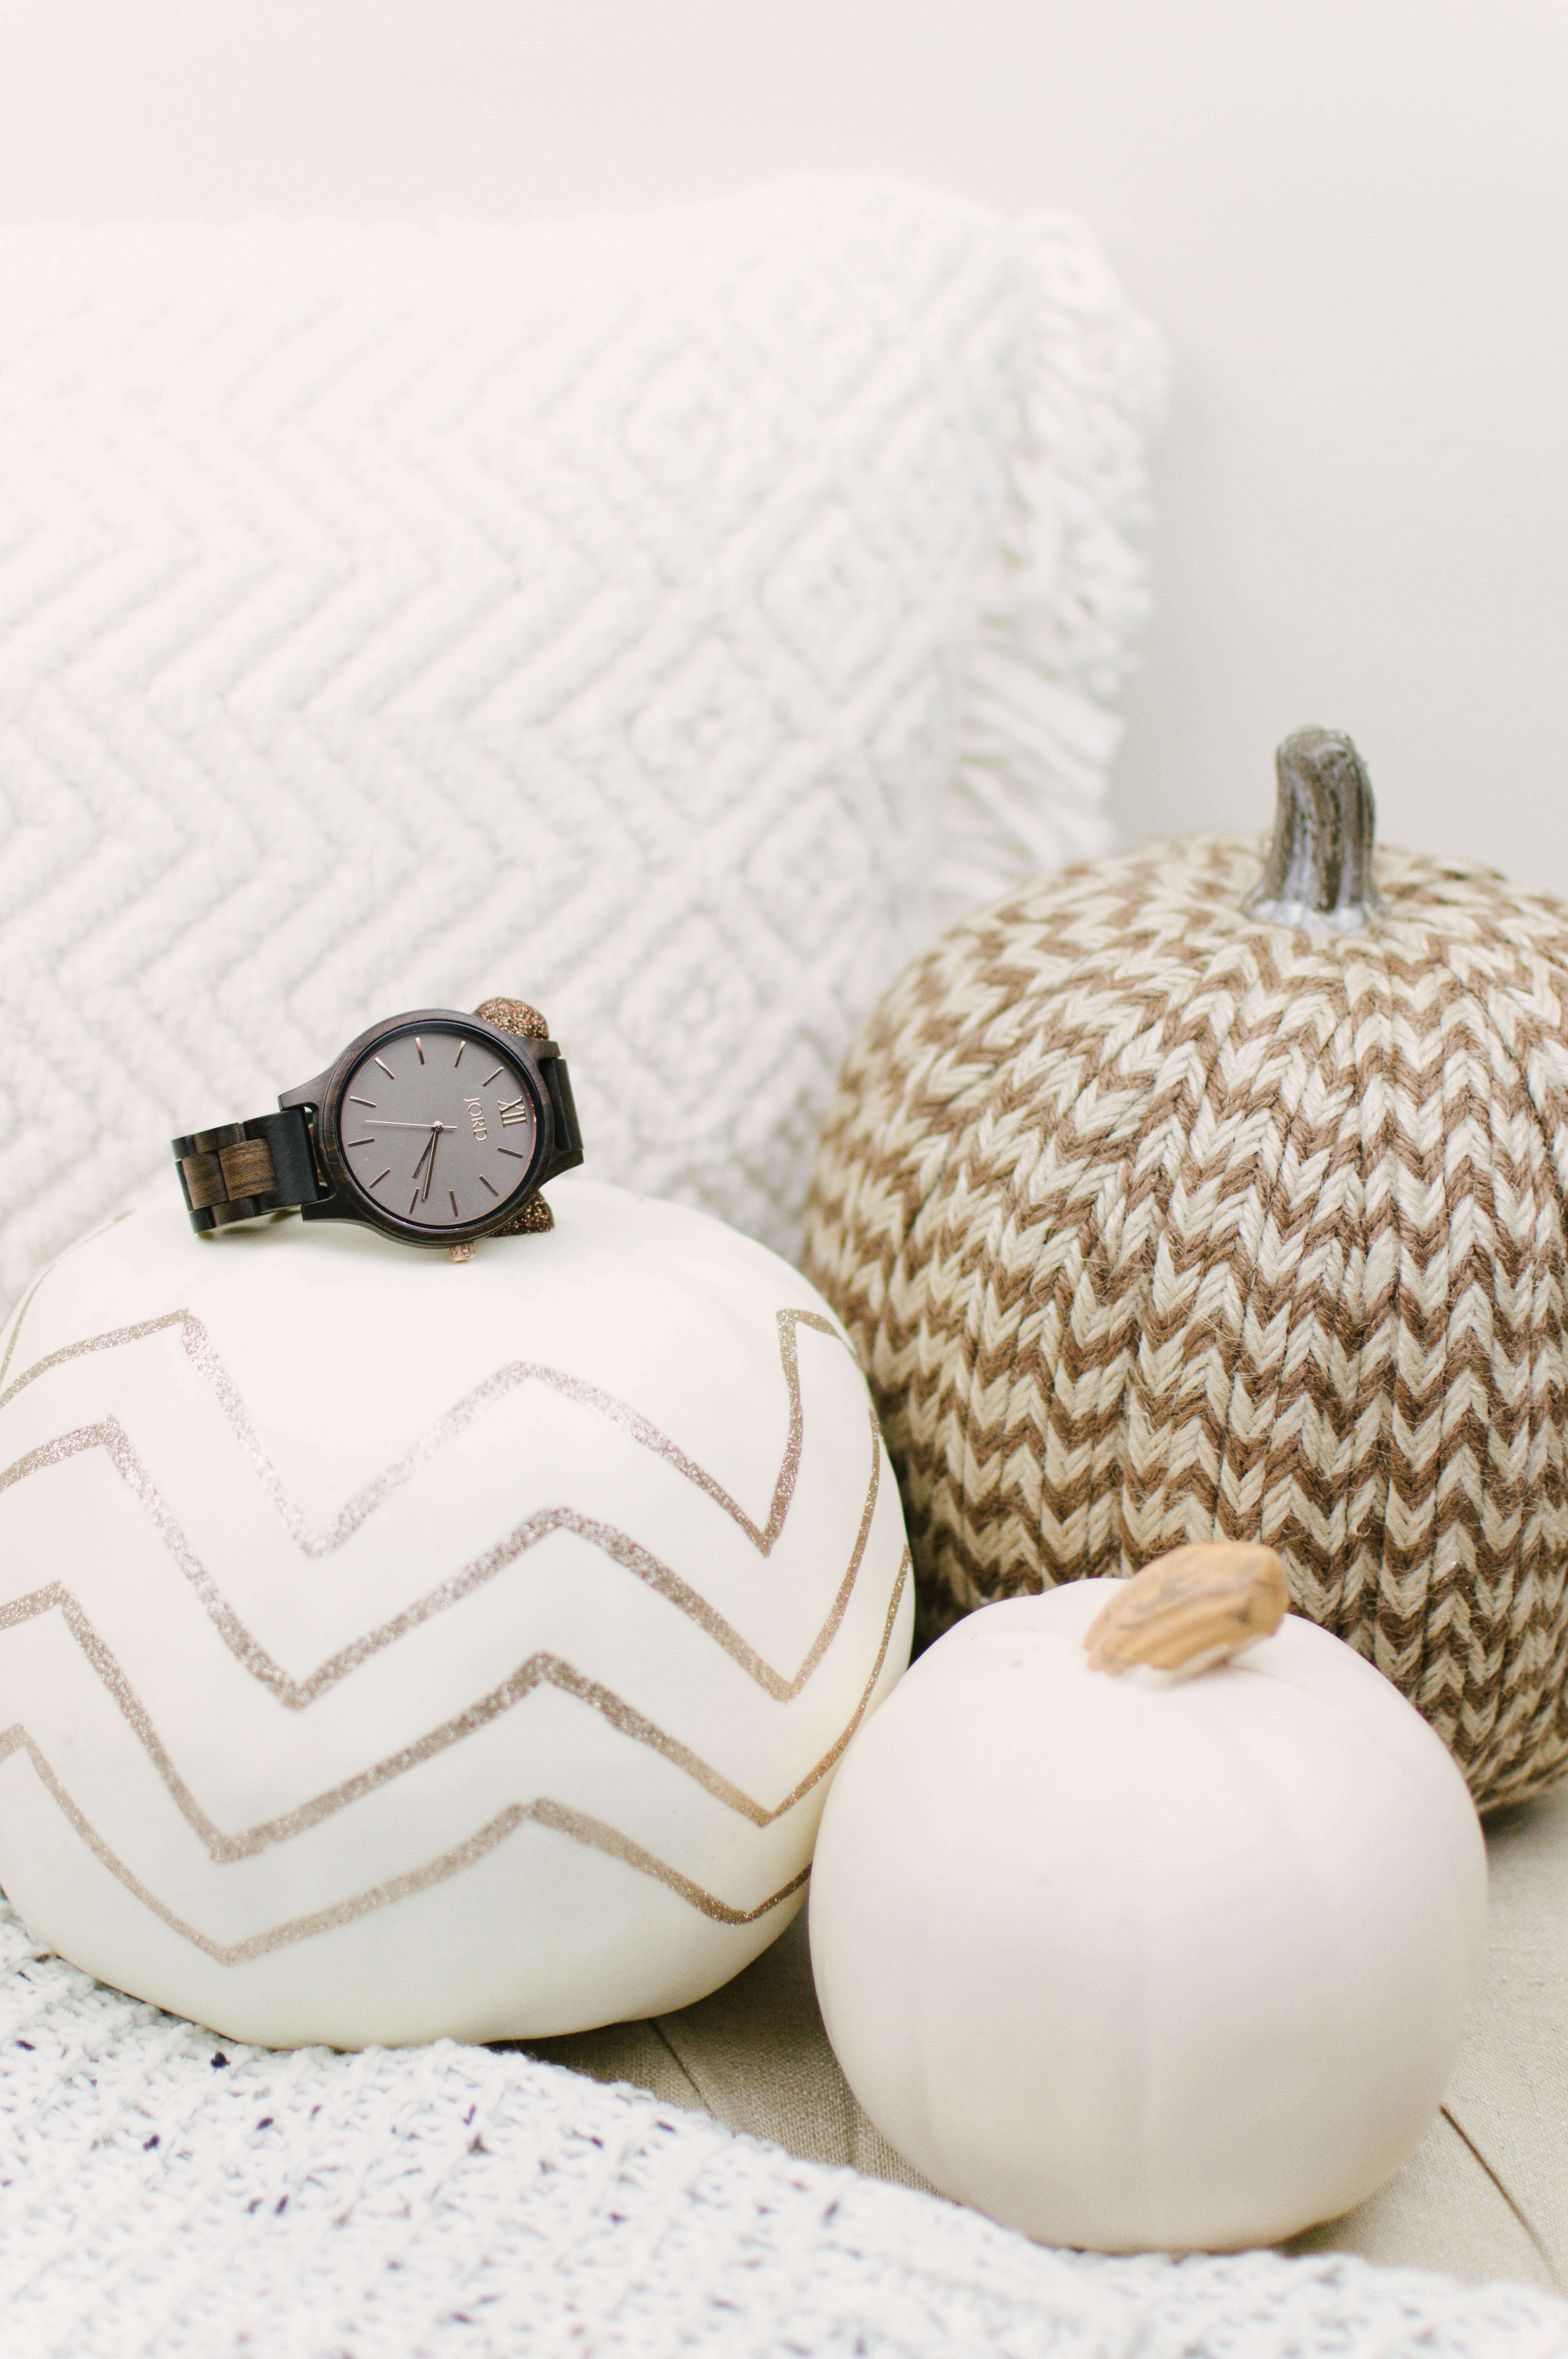 Gifting Unique JORD Women's Wooden Watches and Men's Wooden Watches for the Best Christmas Gift